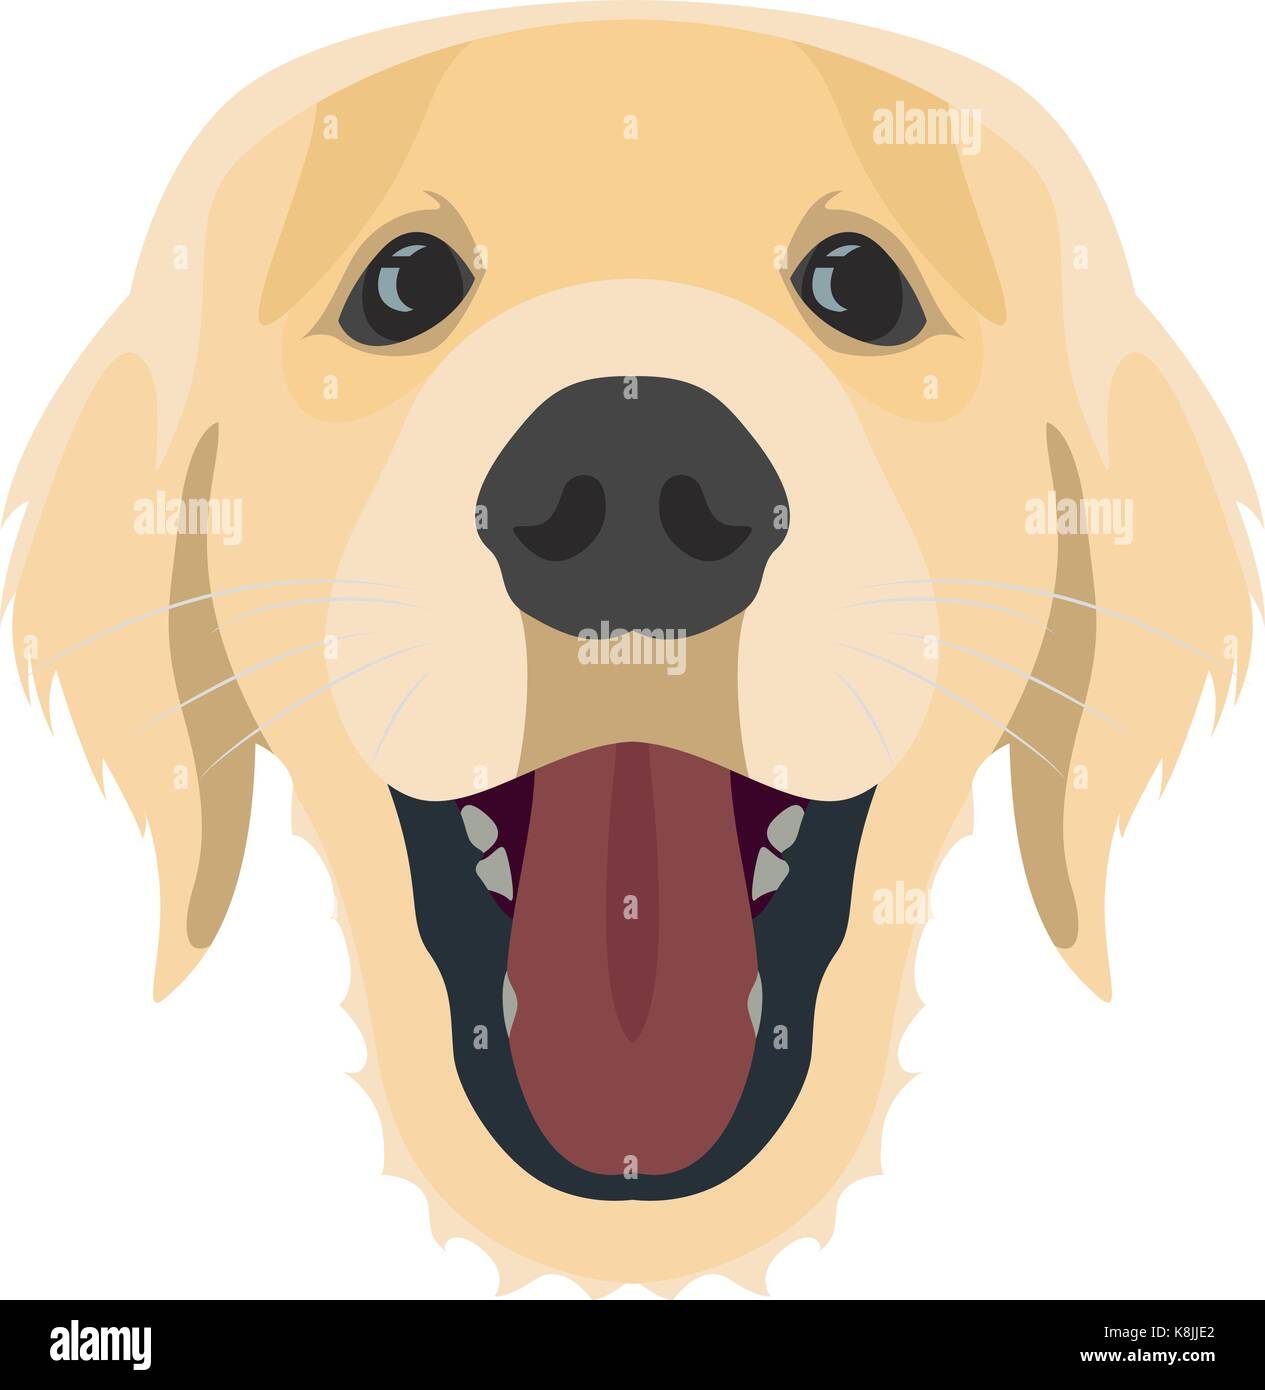 golden retriever dog stock vector images alamy